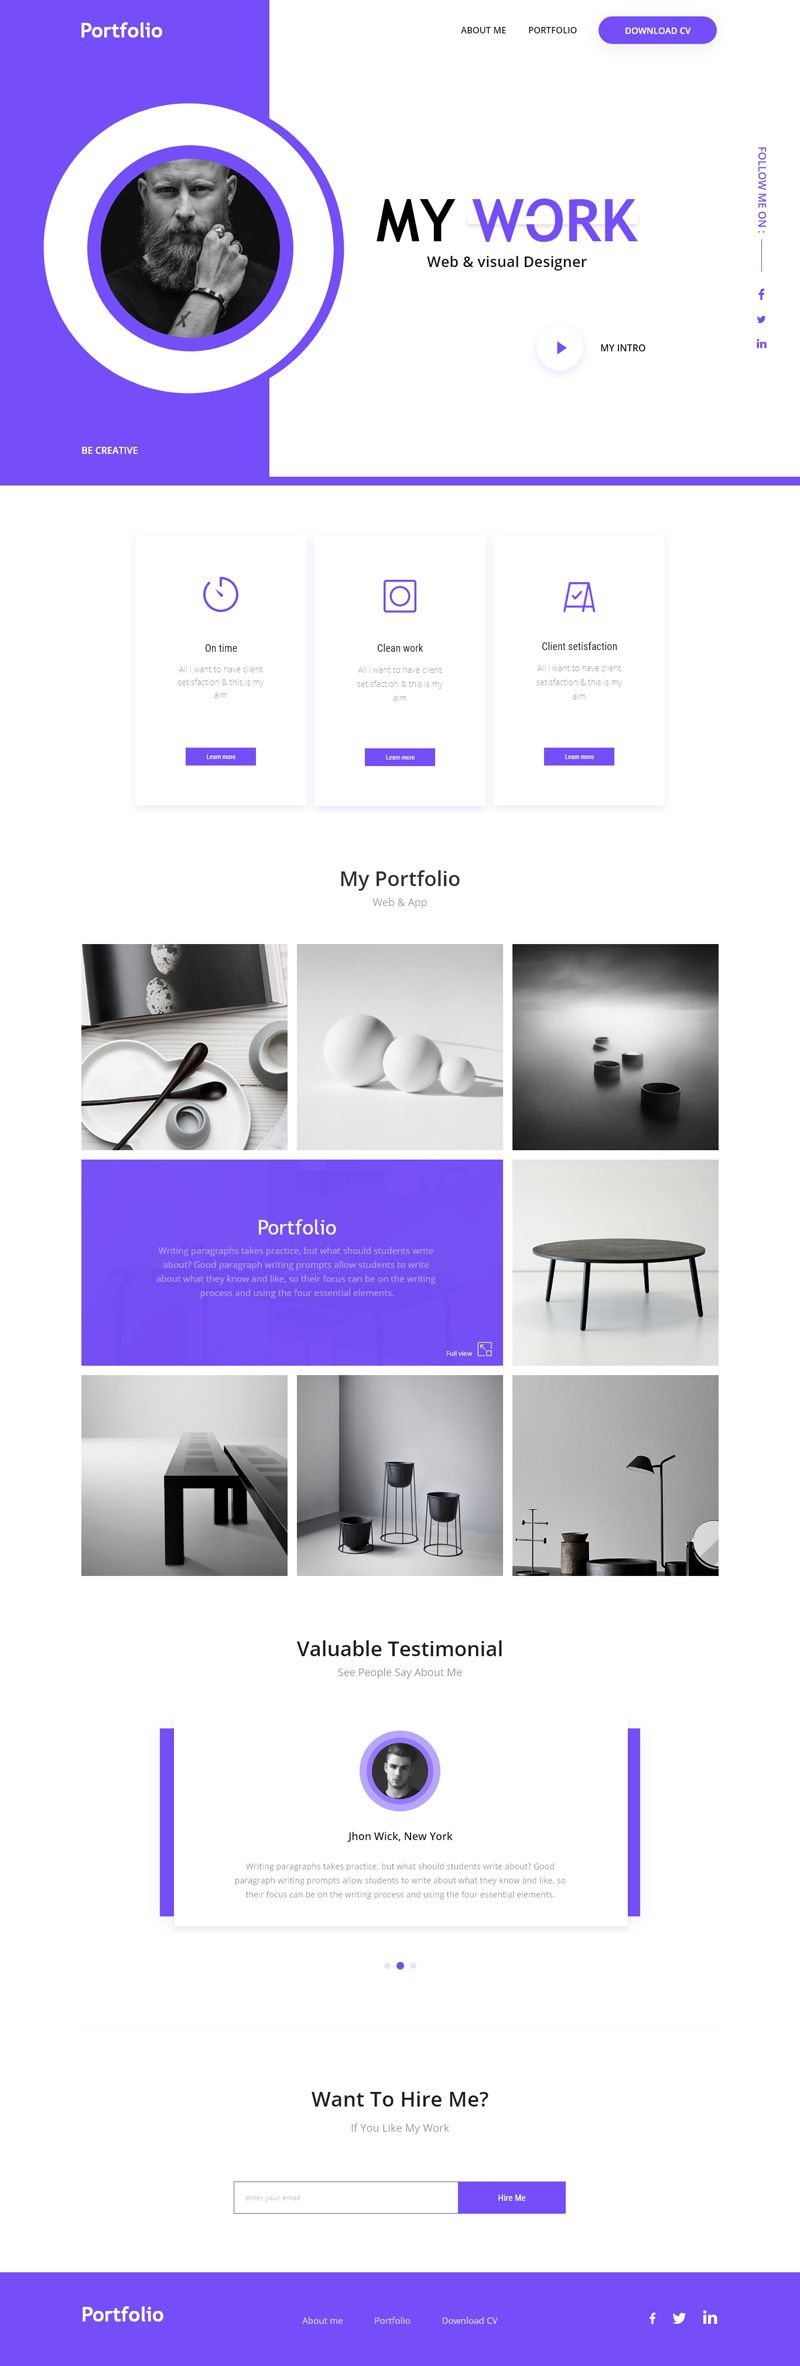 A personal portfolio website template made with Adobe XD